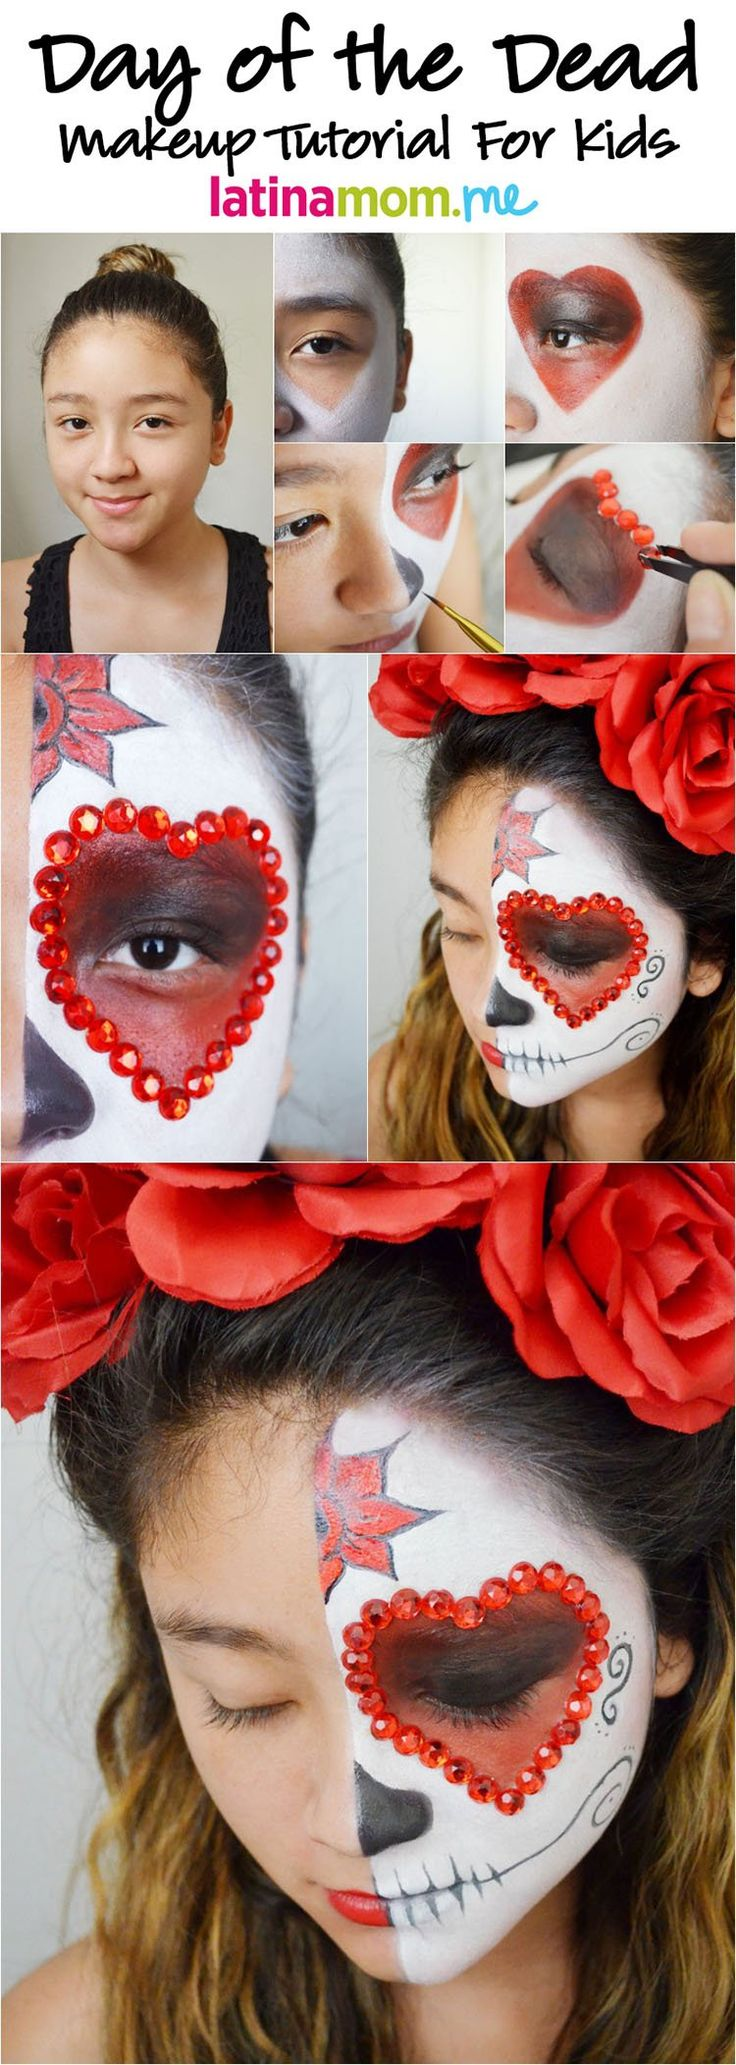 Day of the Dead Face Painting Tutorial for Kids: Celebrate the spiritual holiday with sugar skull face paint by @theartmuse on @latinamomdotme